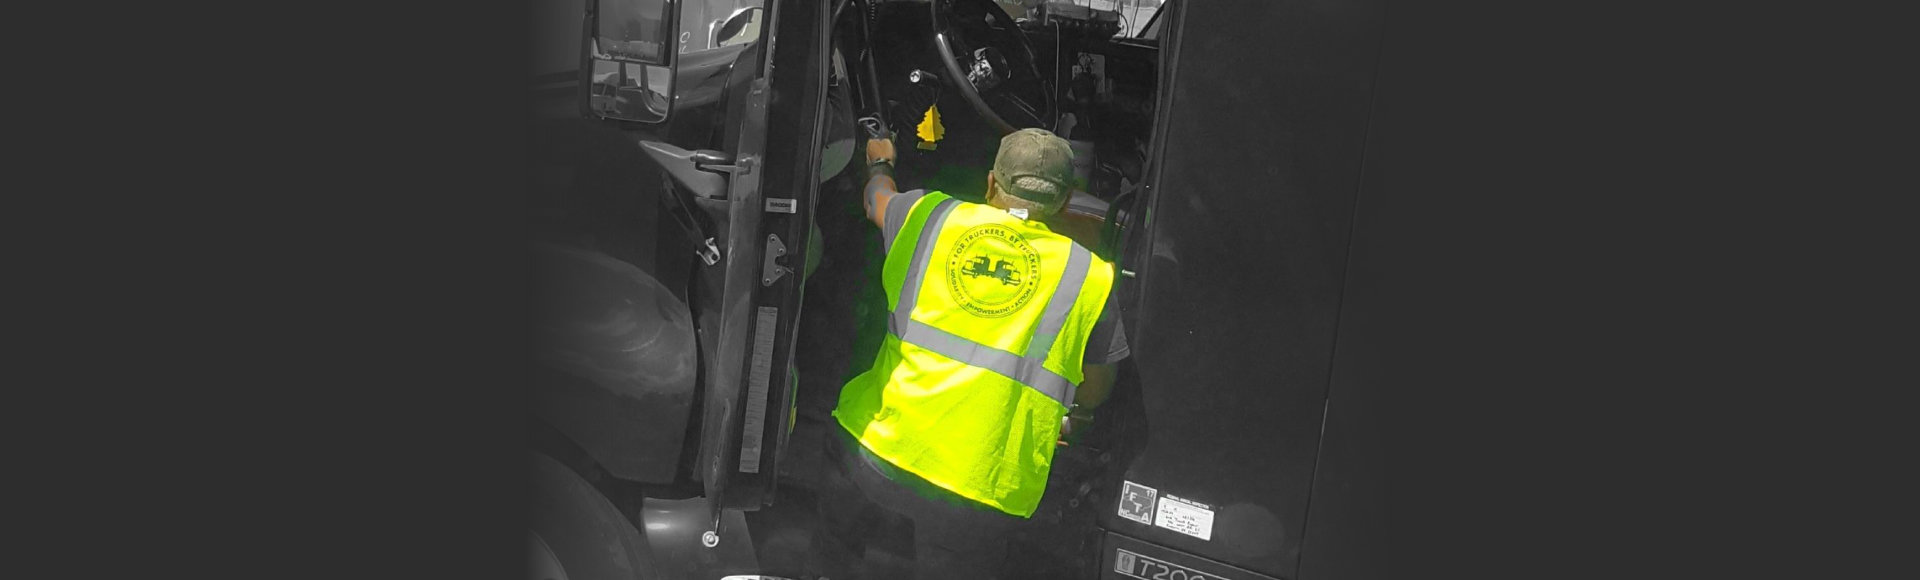 truck driver getting ready to drive